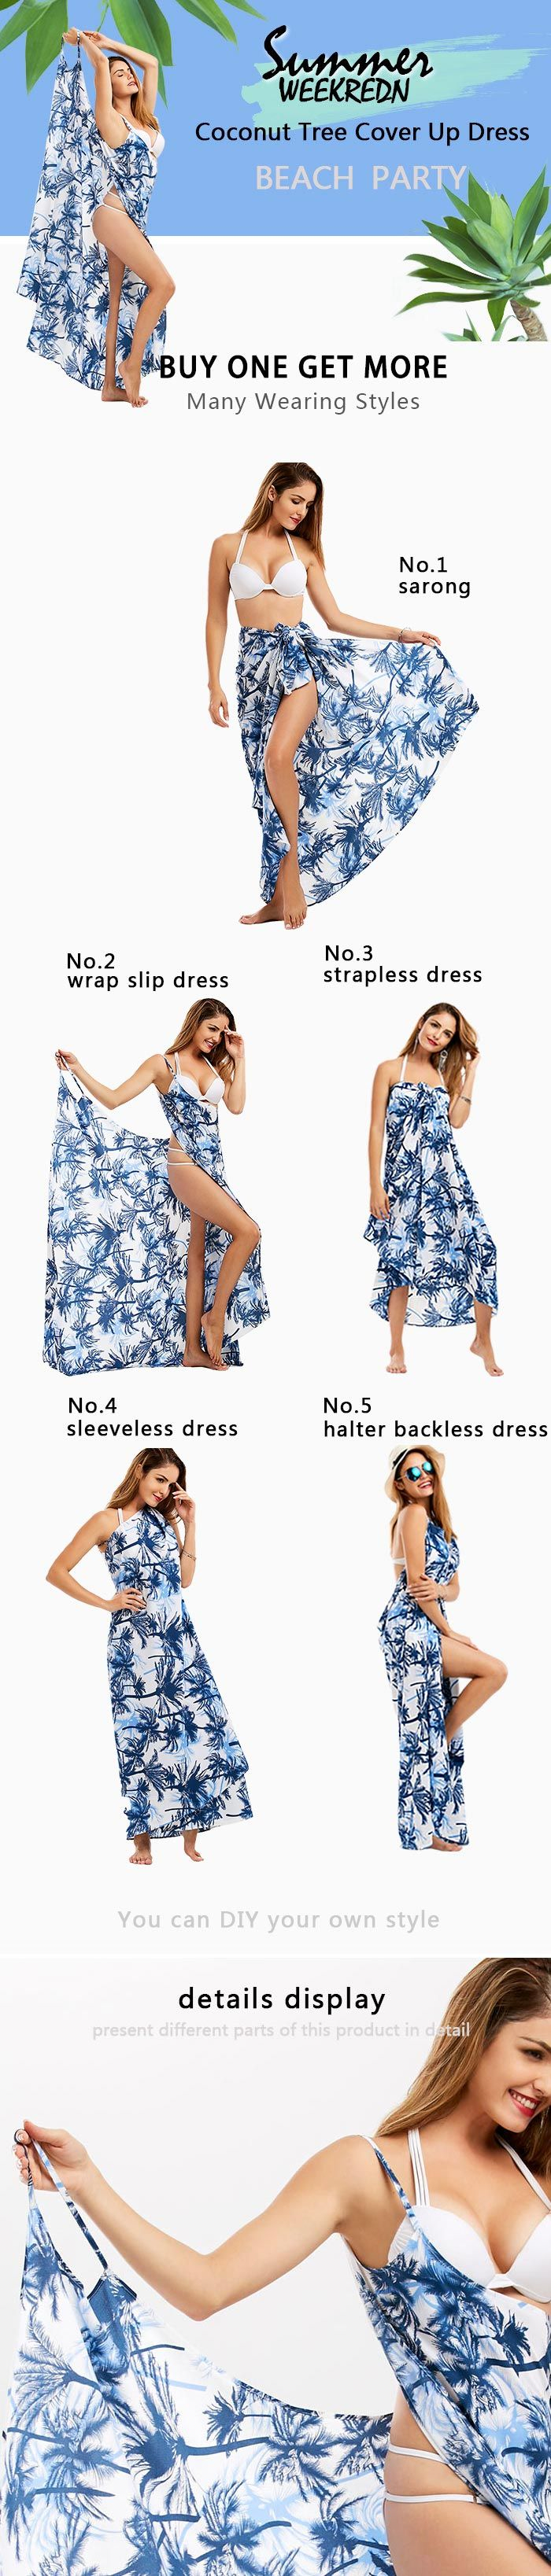 Coconut Tree Wrap Slip Cover Up Dress